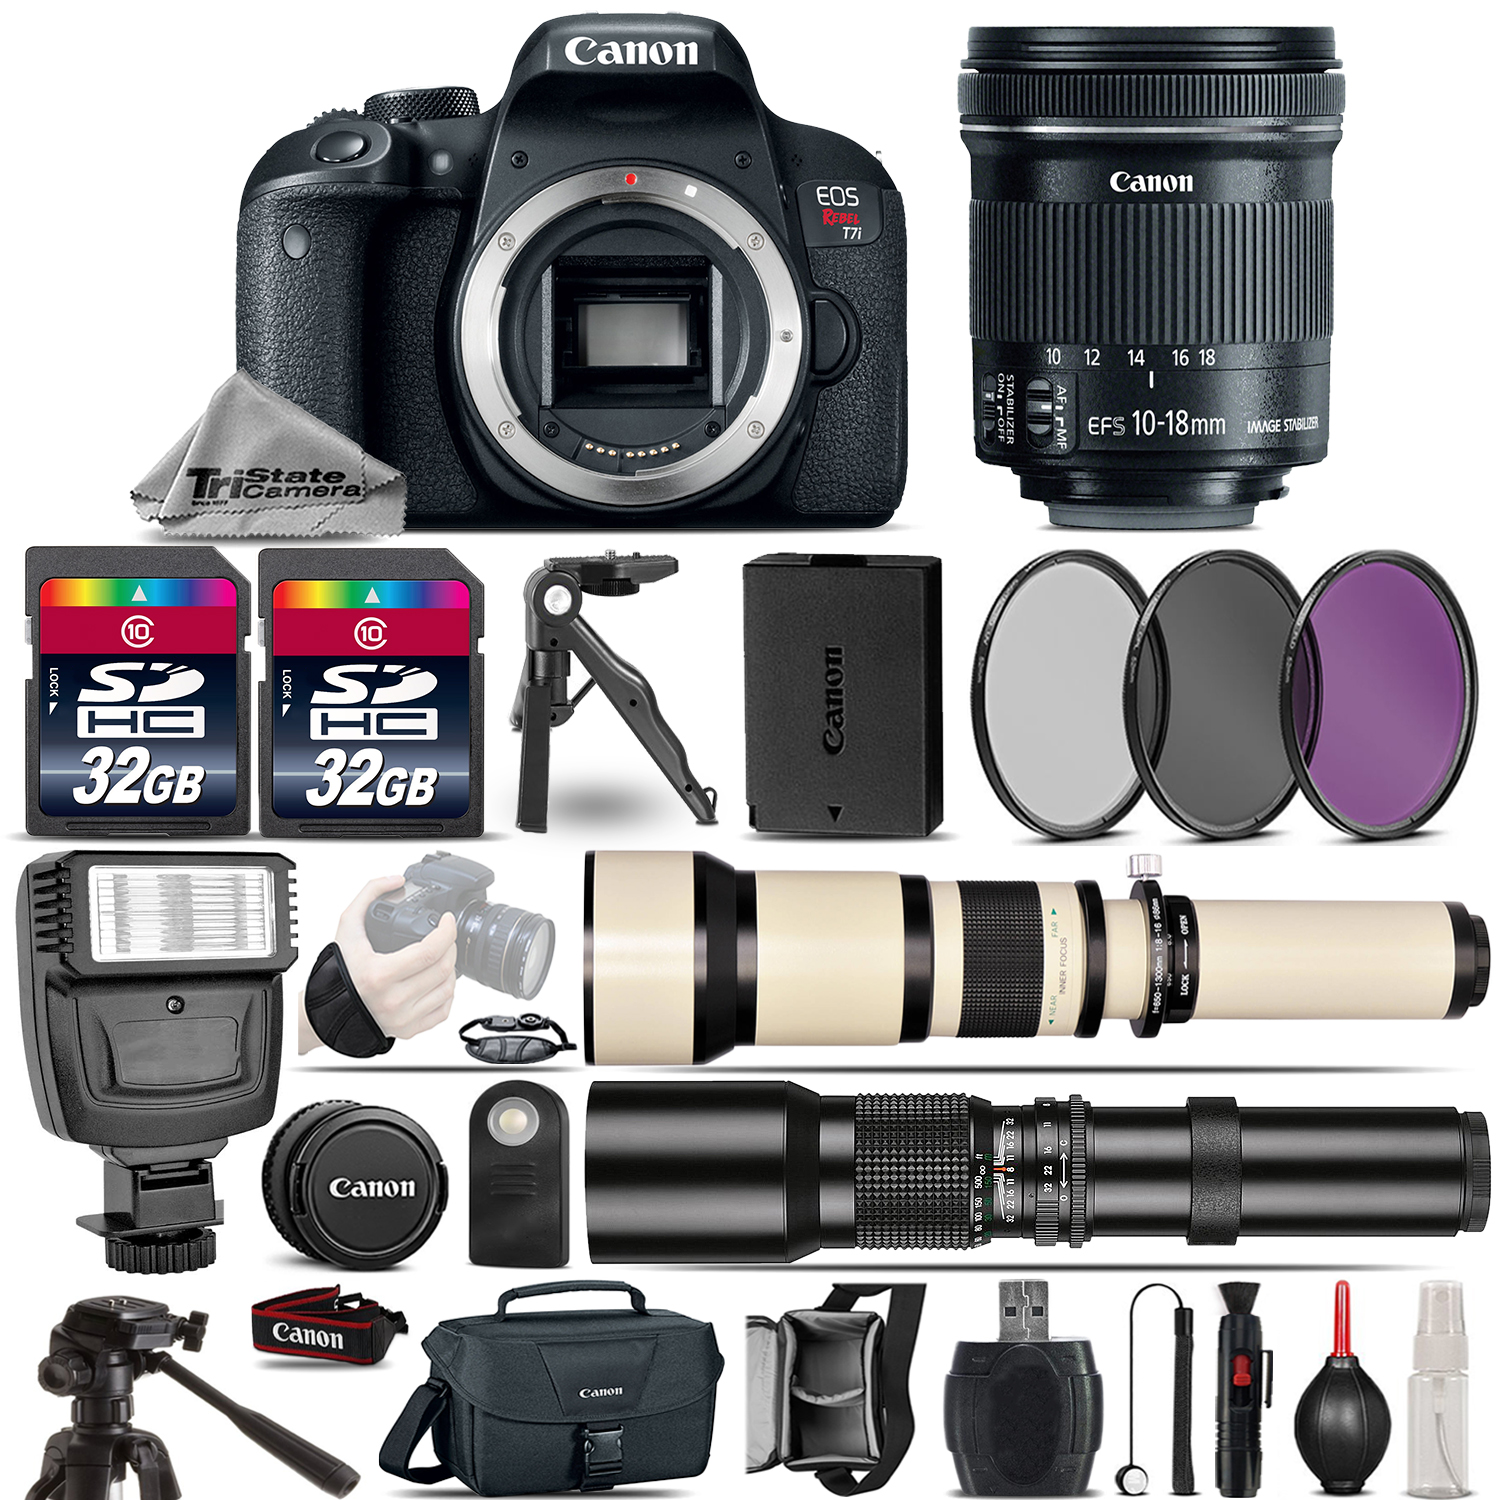 EOS Rebel T7i DSLR Camera + 10-18mm IS + 650-1300mm +500mm Lens - 64GB Kit *FREE SHIPPING*